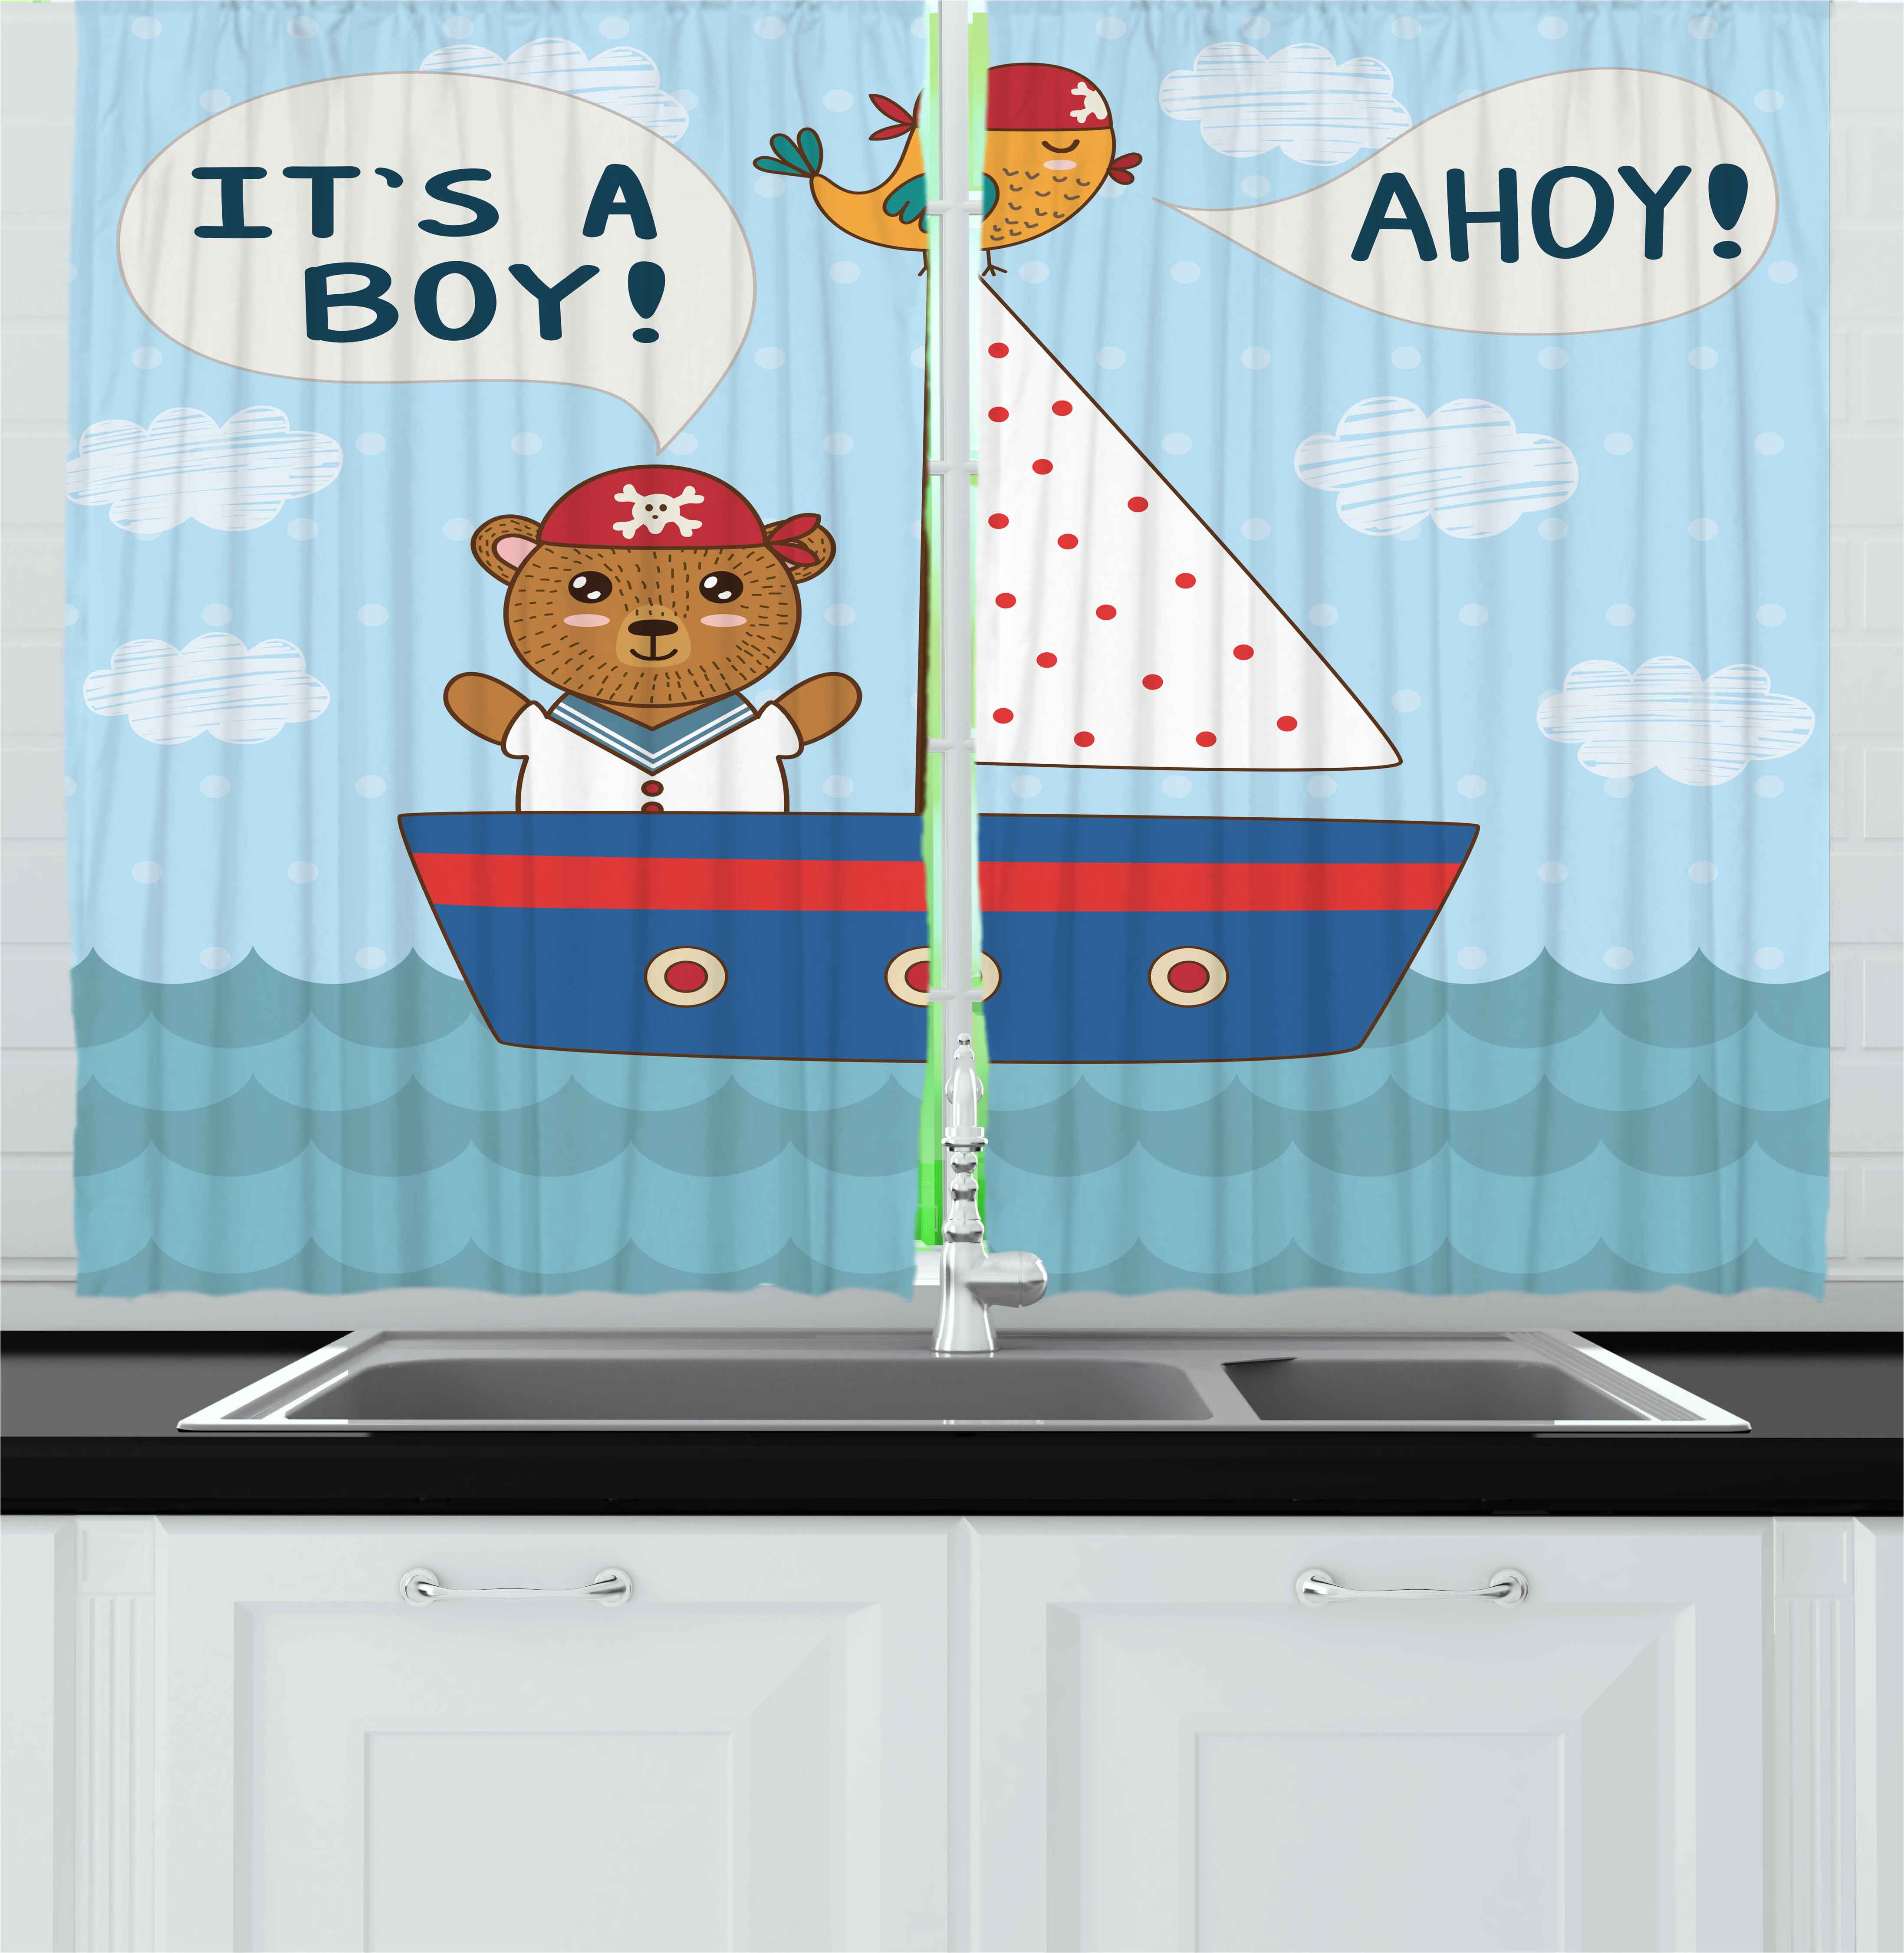 Ahoy Its a Boy Curtains 2 Panels Set, Cute Baby Shower Theme It's a Boy in Nautical Style Bear and Bird in Boat, Window Drapes for Living Room Bedroom, 55W X 39L Inches, Multicolor, by Ambesonne